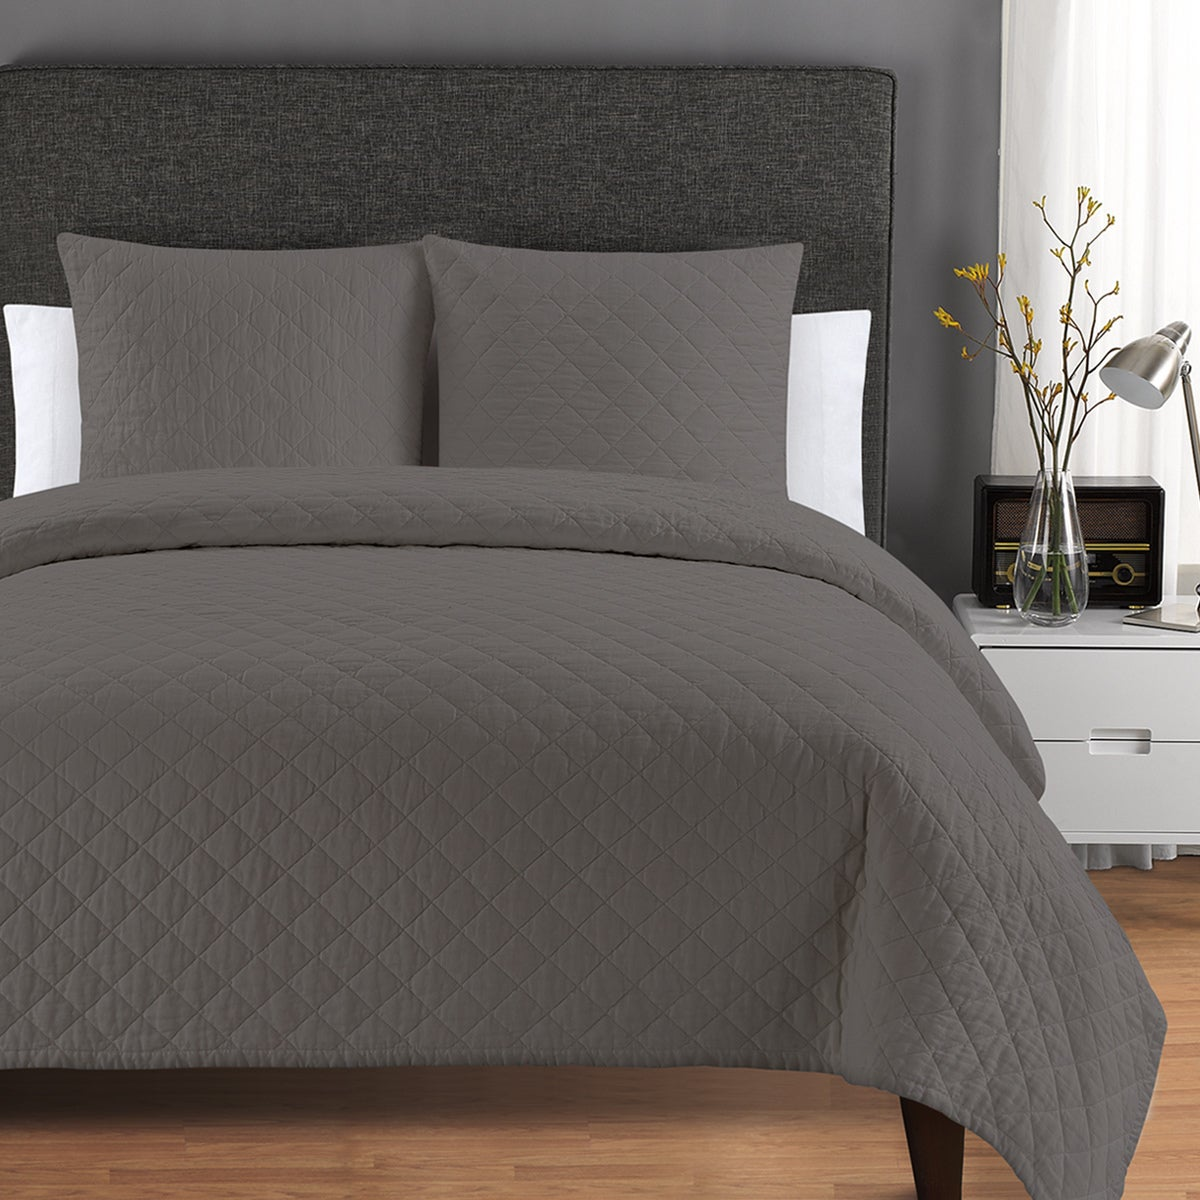 Exceptional Quilted Washed Belgian Linen Coverlet   On Sale   Free Shipping Today    Overstock.com   20156627